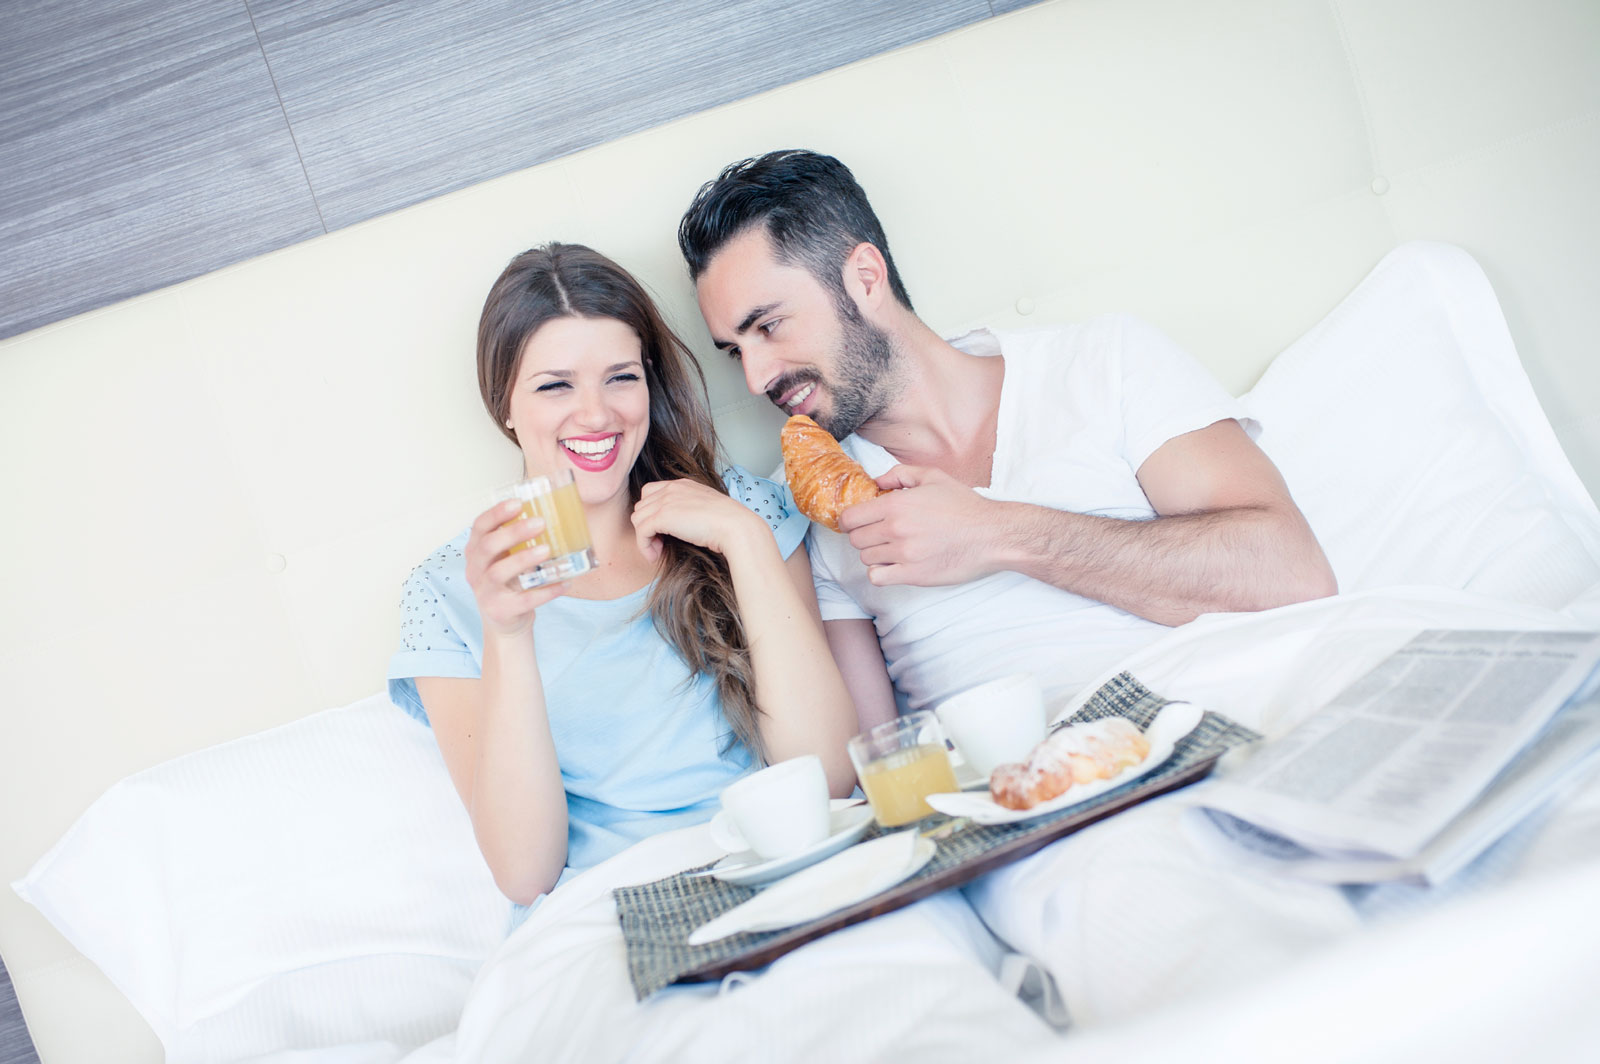 man and women eating break in bed